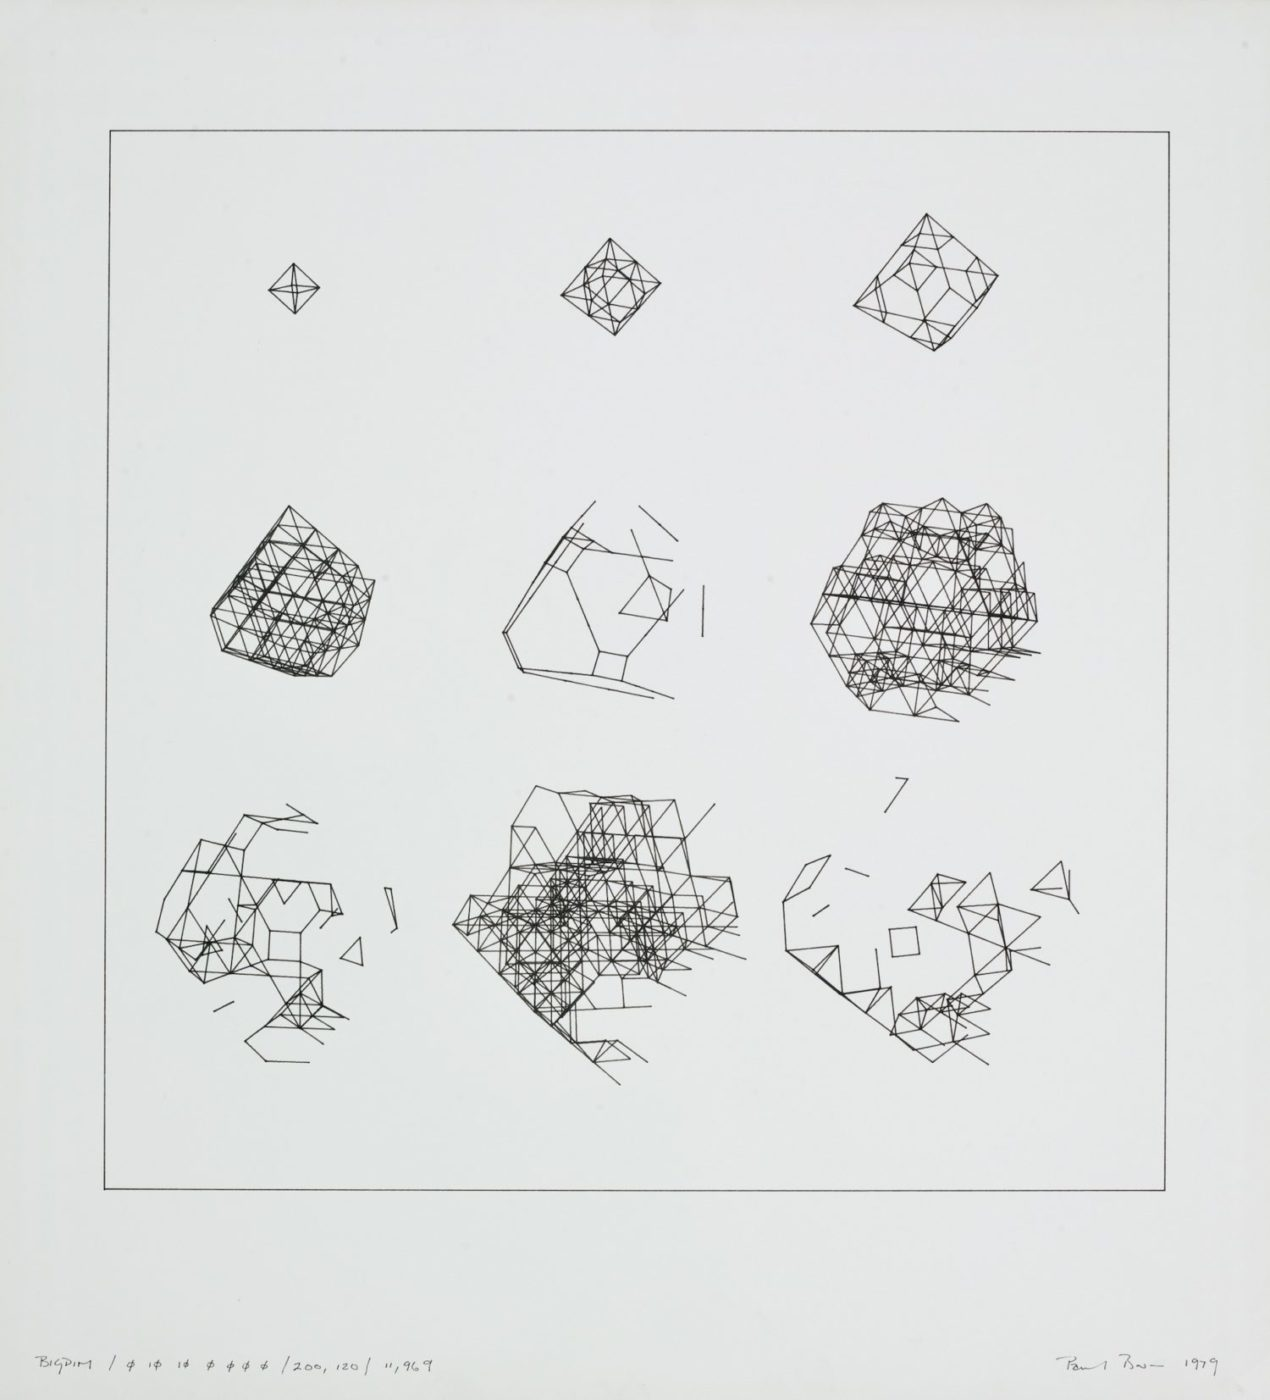 Paul Brown, Bigdim, plotter drawing, ink on paper, 1969